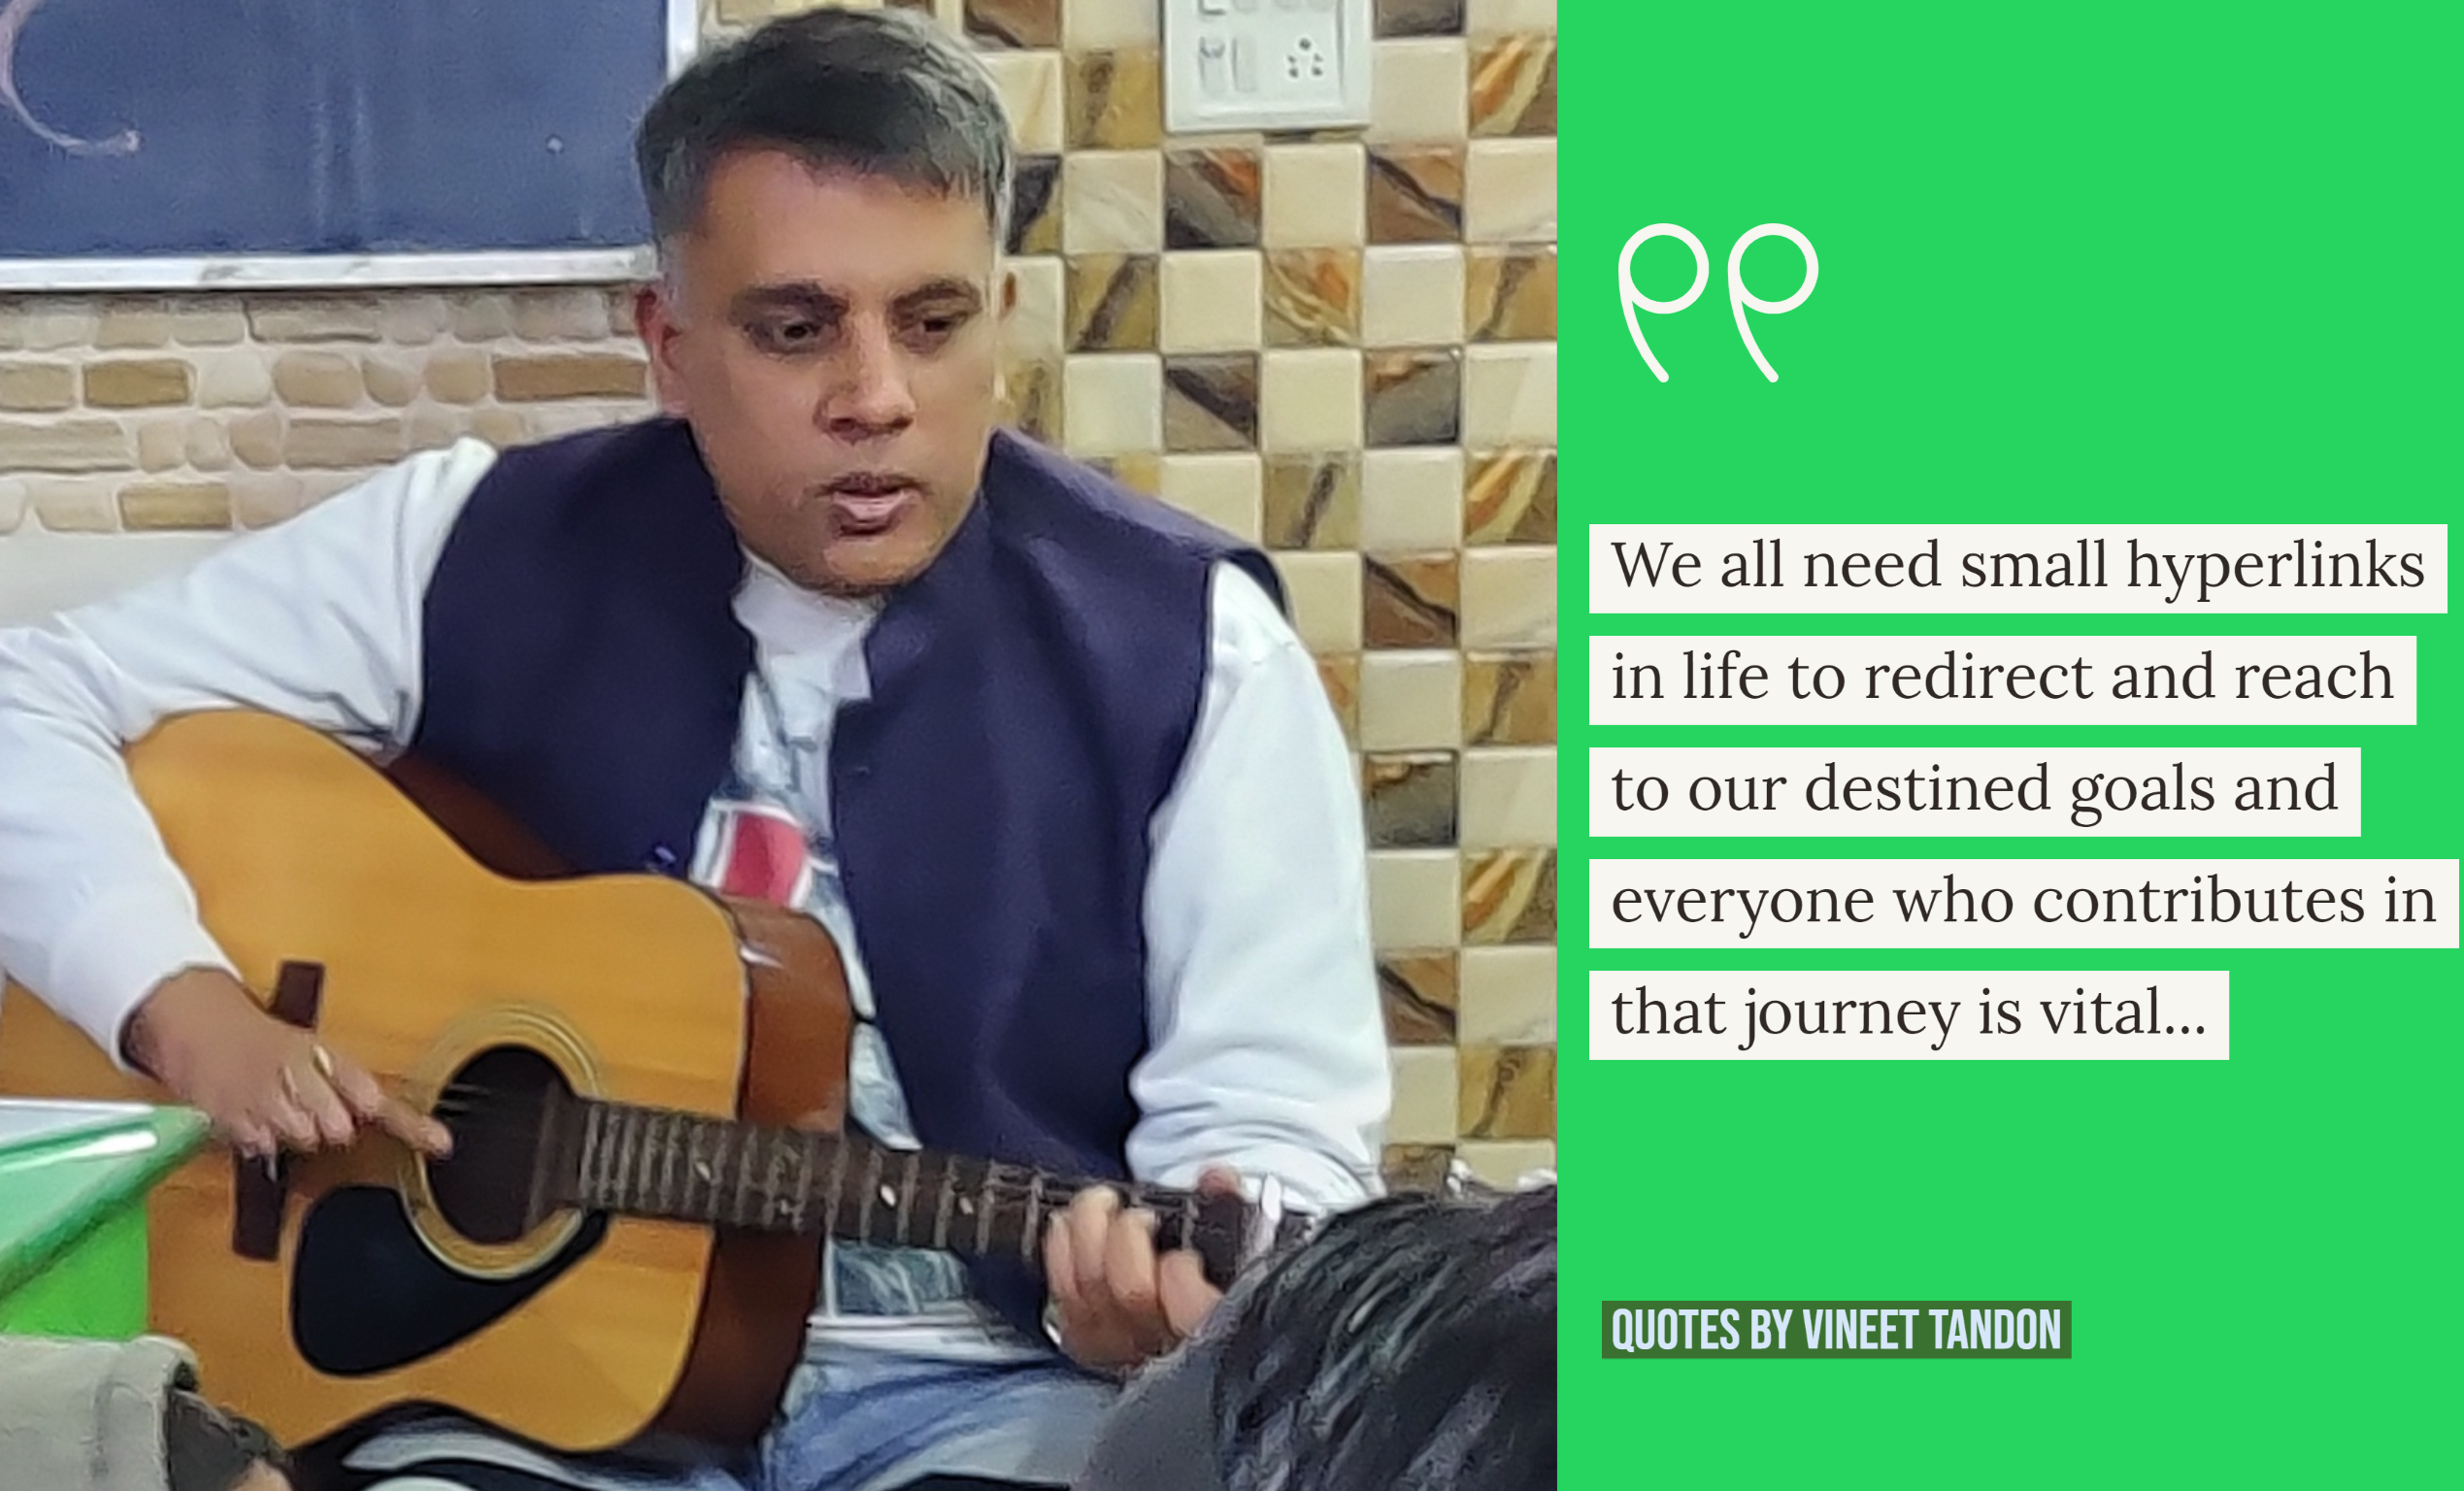 Quotes By Vineet Tandon 07